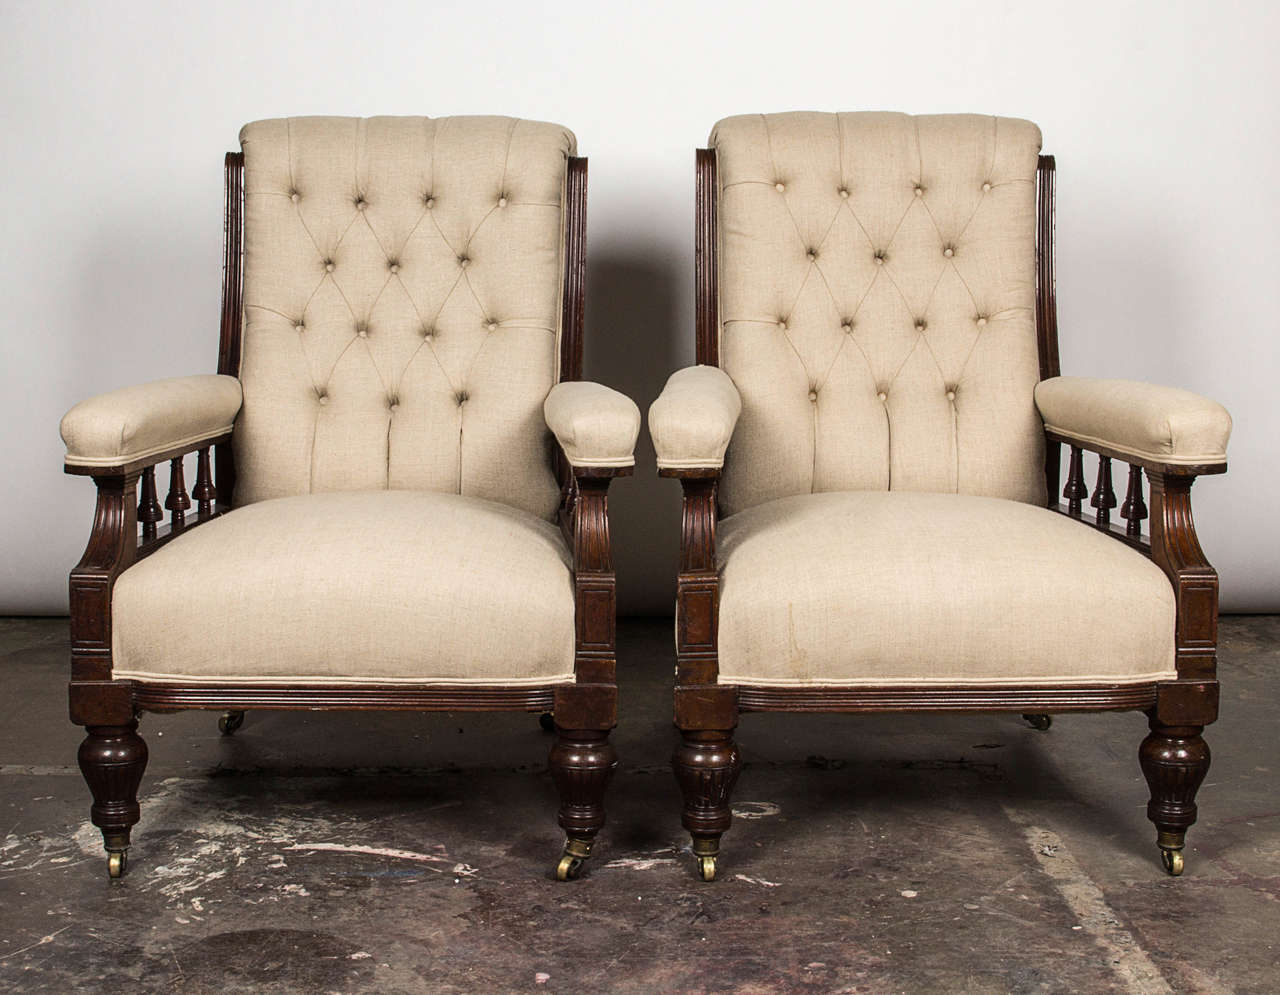 Rectangular button-tufted backrest with exposed frame sides over the rectangular seat flanked by padded and turned spindle arms. Covered in white linen fabric over turned legs and casters. Possibly late 19th century American.  Not available for